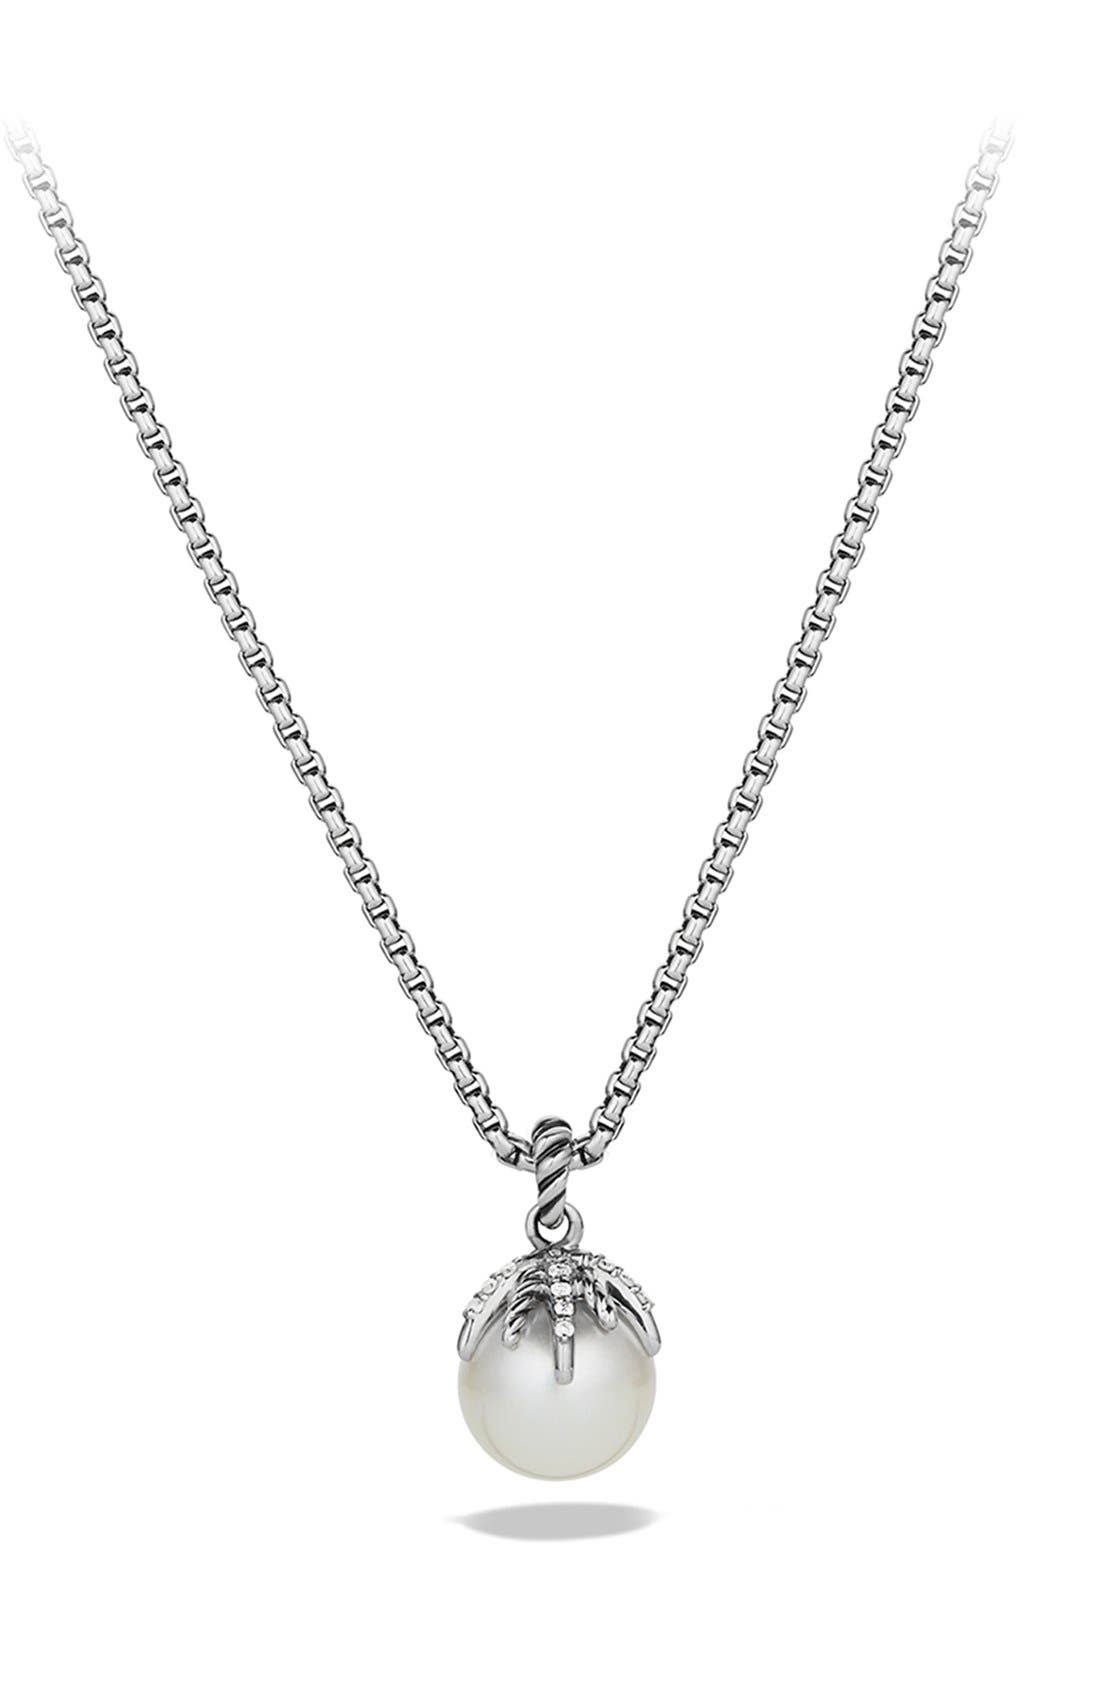 DAVID YURMAN Starburst Pearl Pendant with Diamonds on Chain